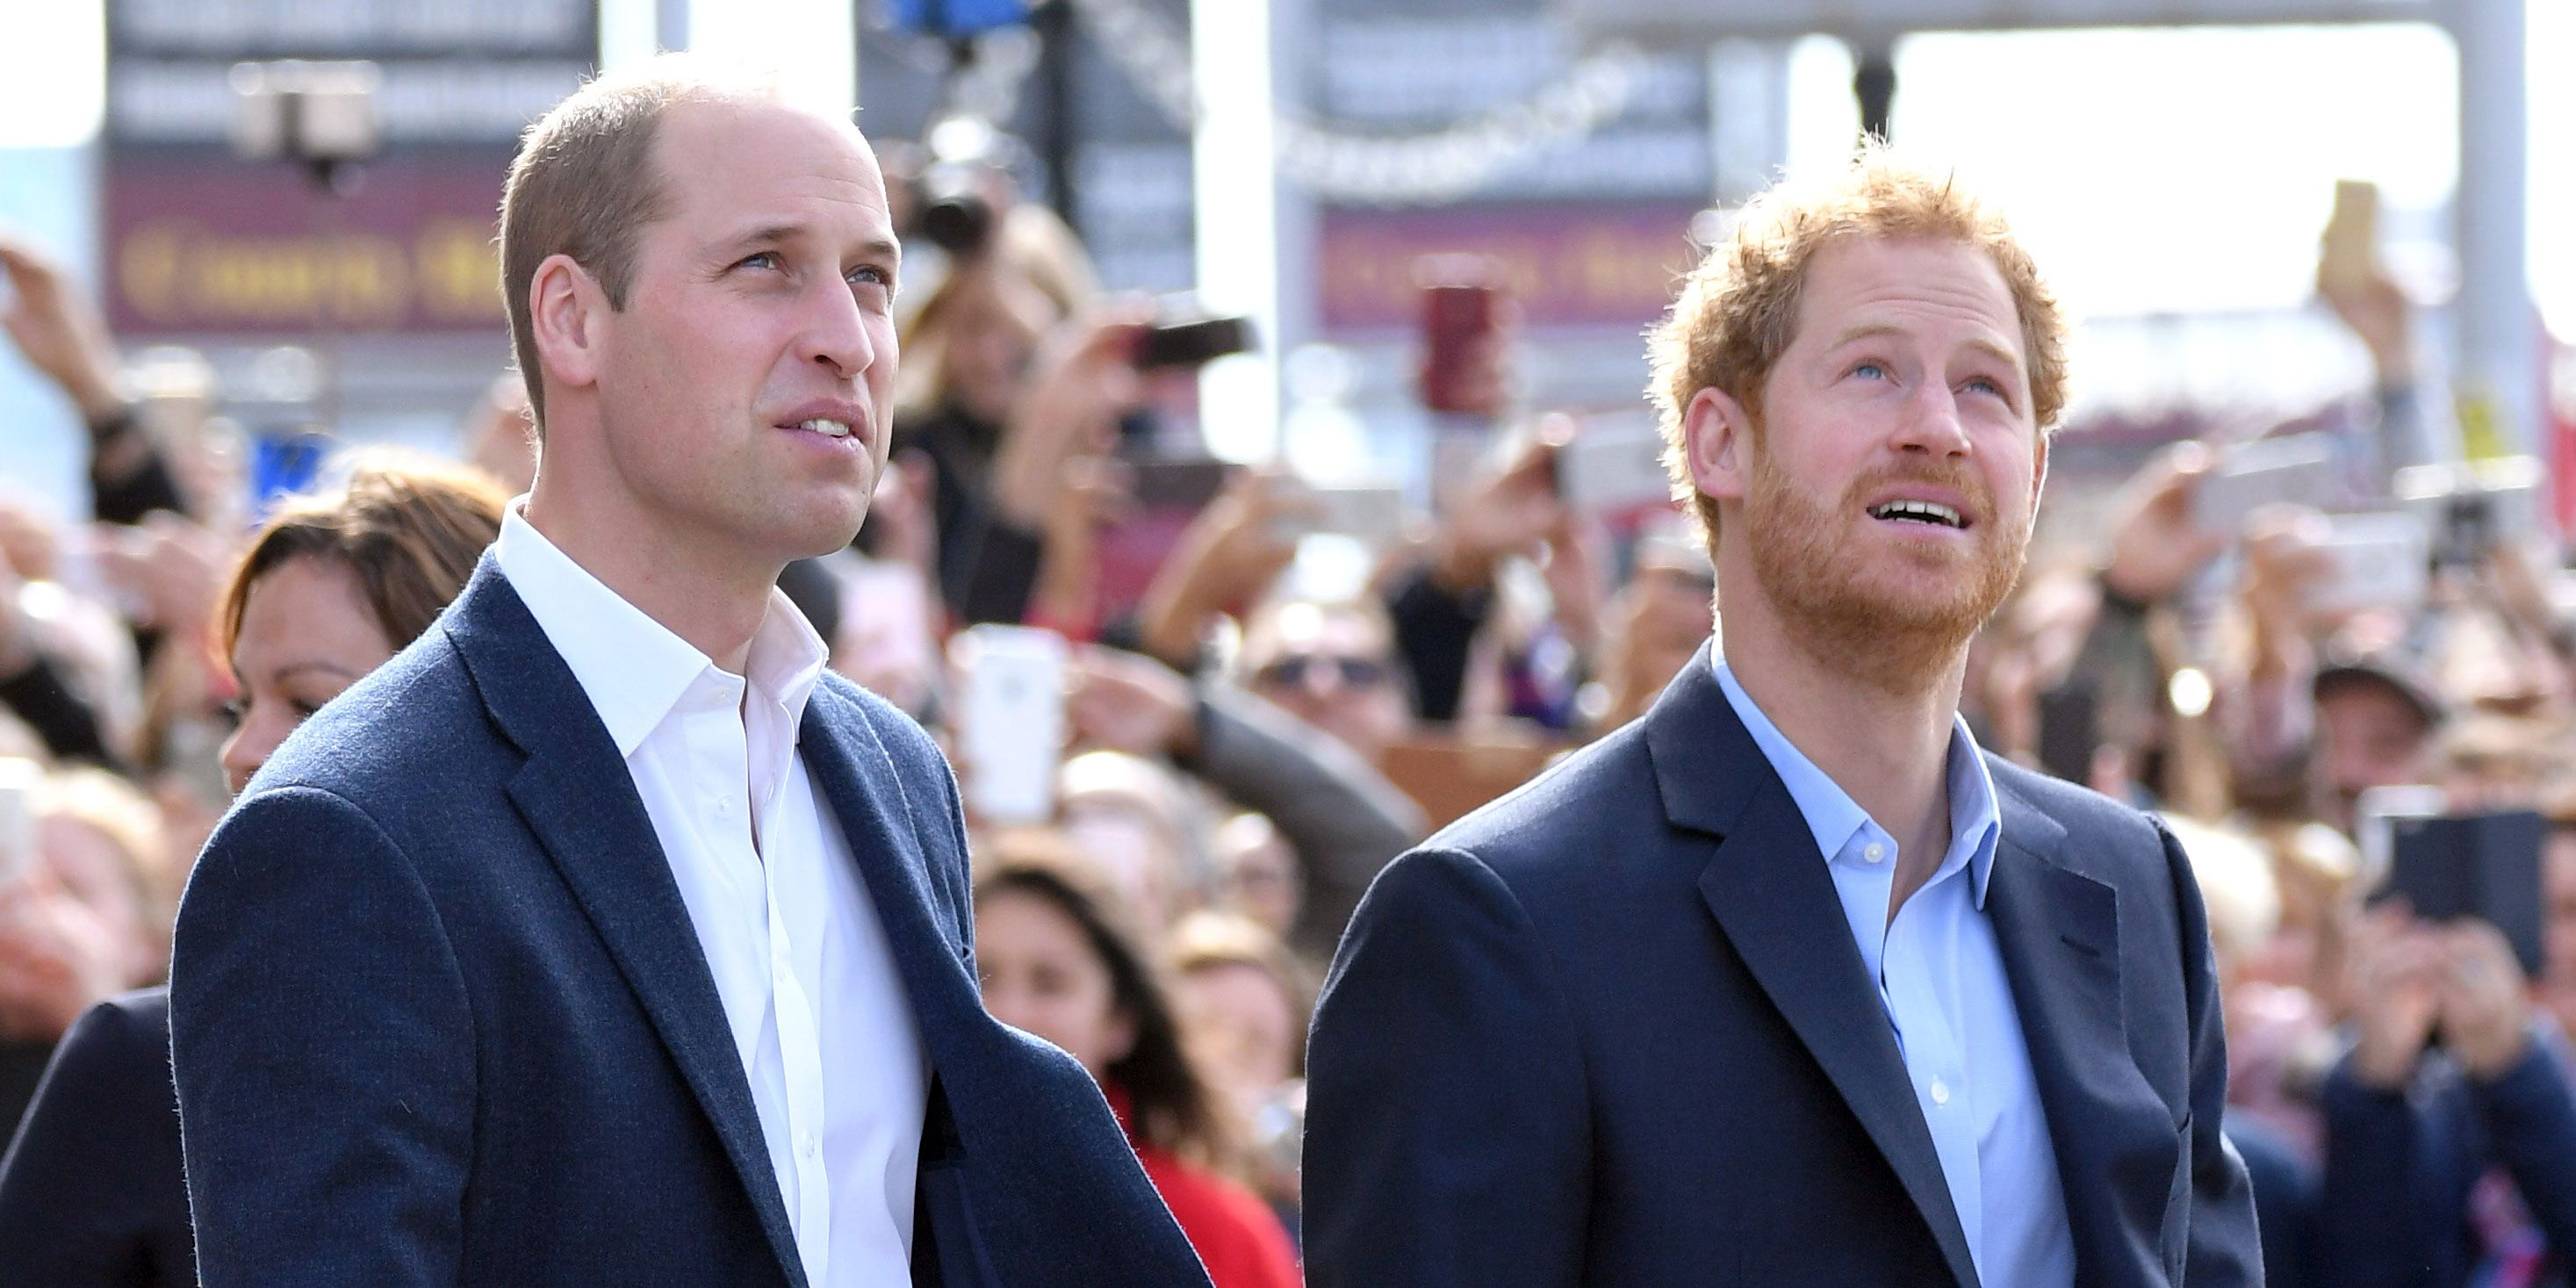 Prince William, Duke of Cambridge and Prince Harry arrive to celebrate World Mental Health Day with Heads Together at the London Eye on October 10, 2016 in London